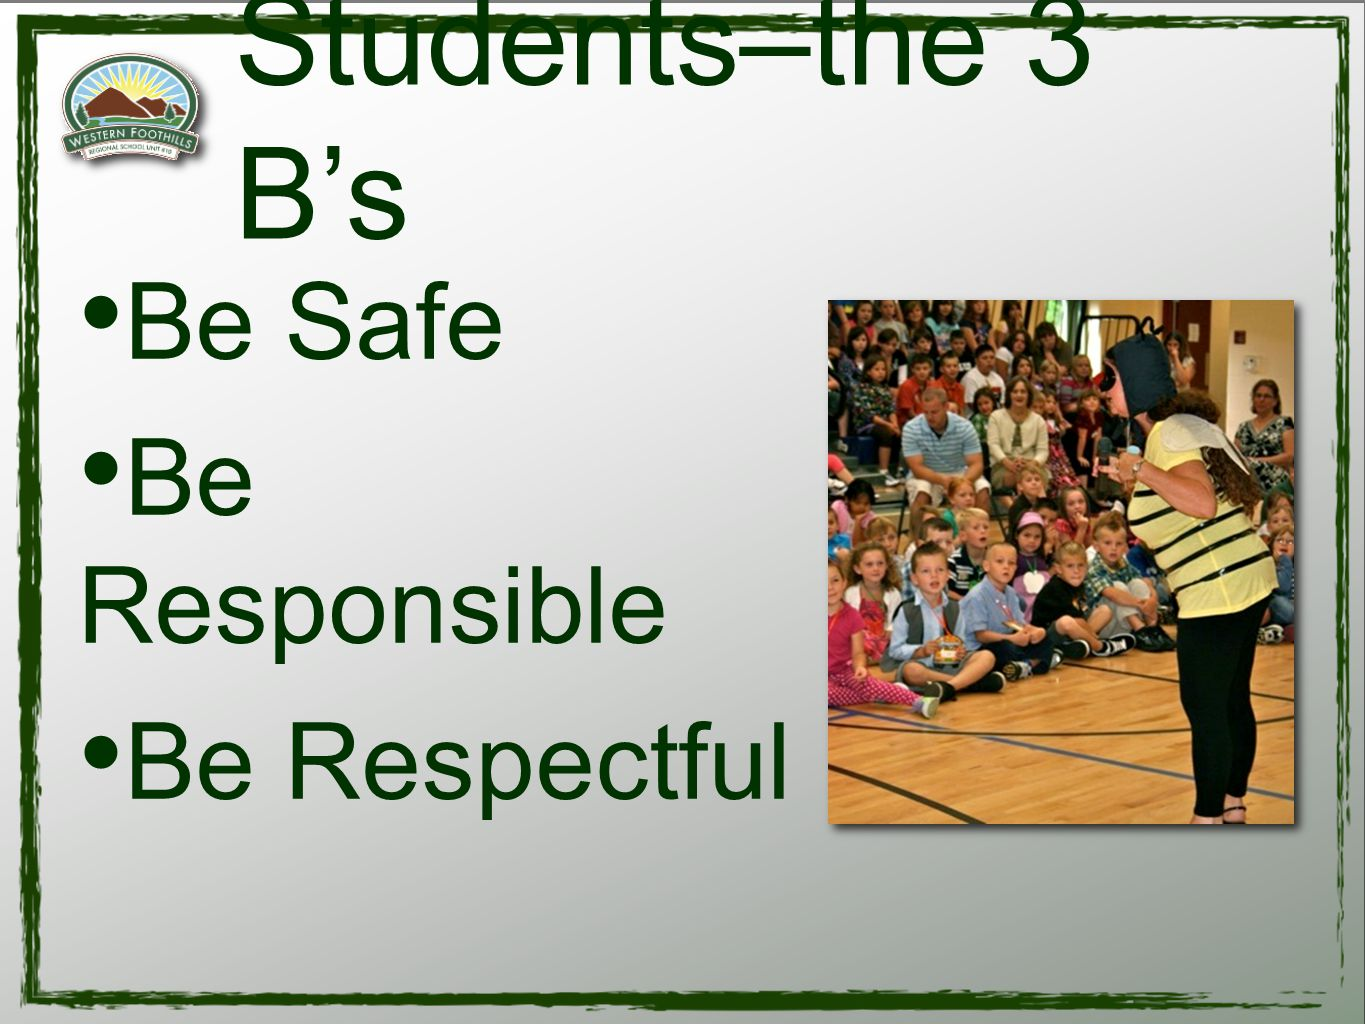 Be Safe Be Responsible Be Respectful Students–the 3 B's